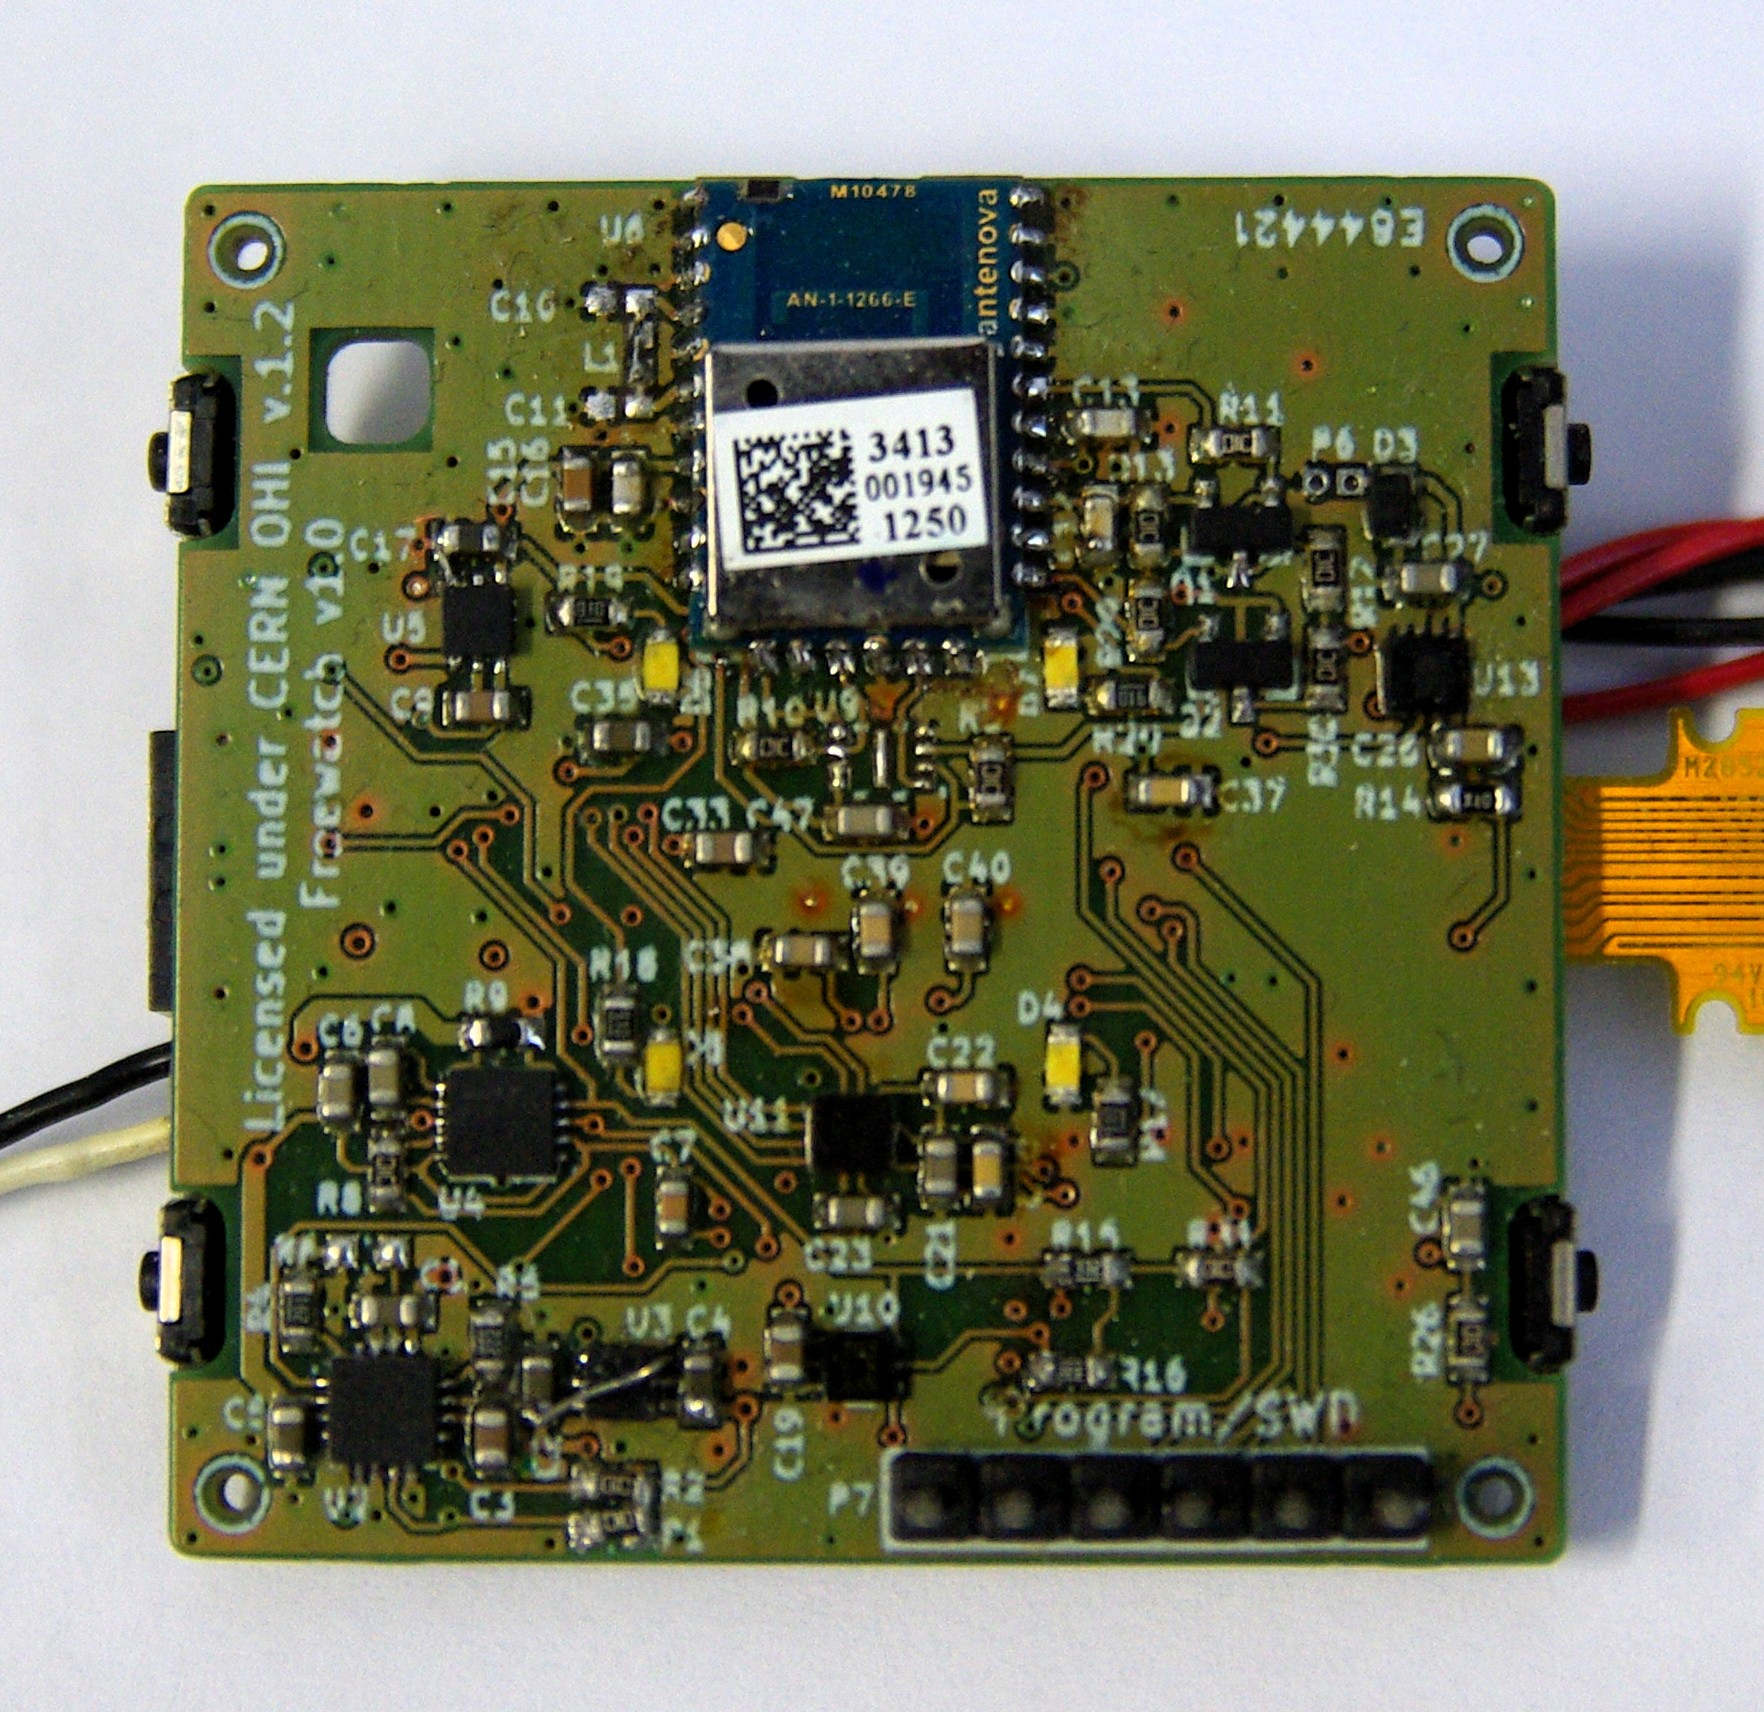 doc/fosdem2015/pictures/pcb_mounted_top.jpg